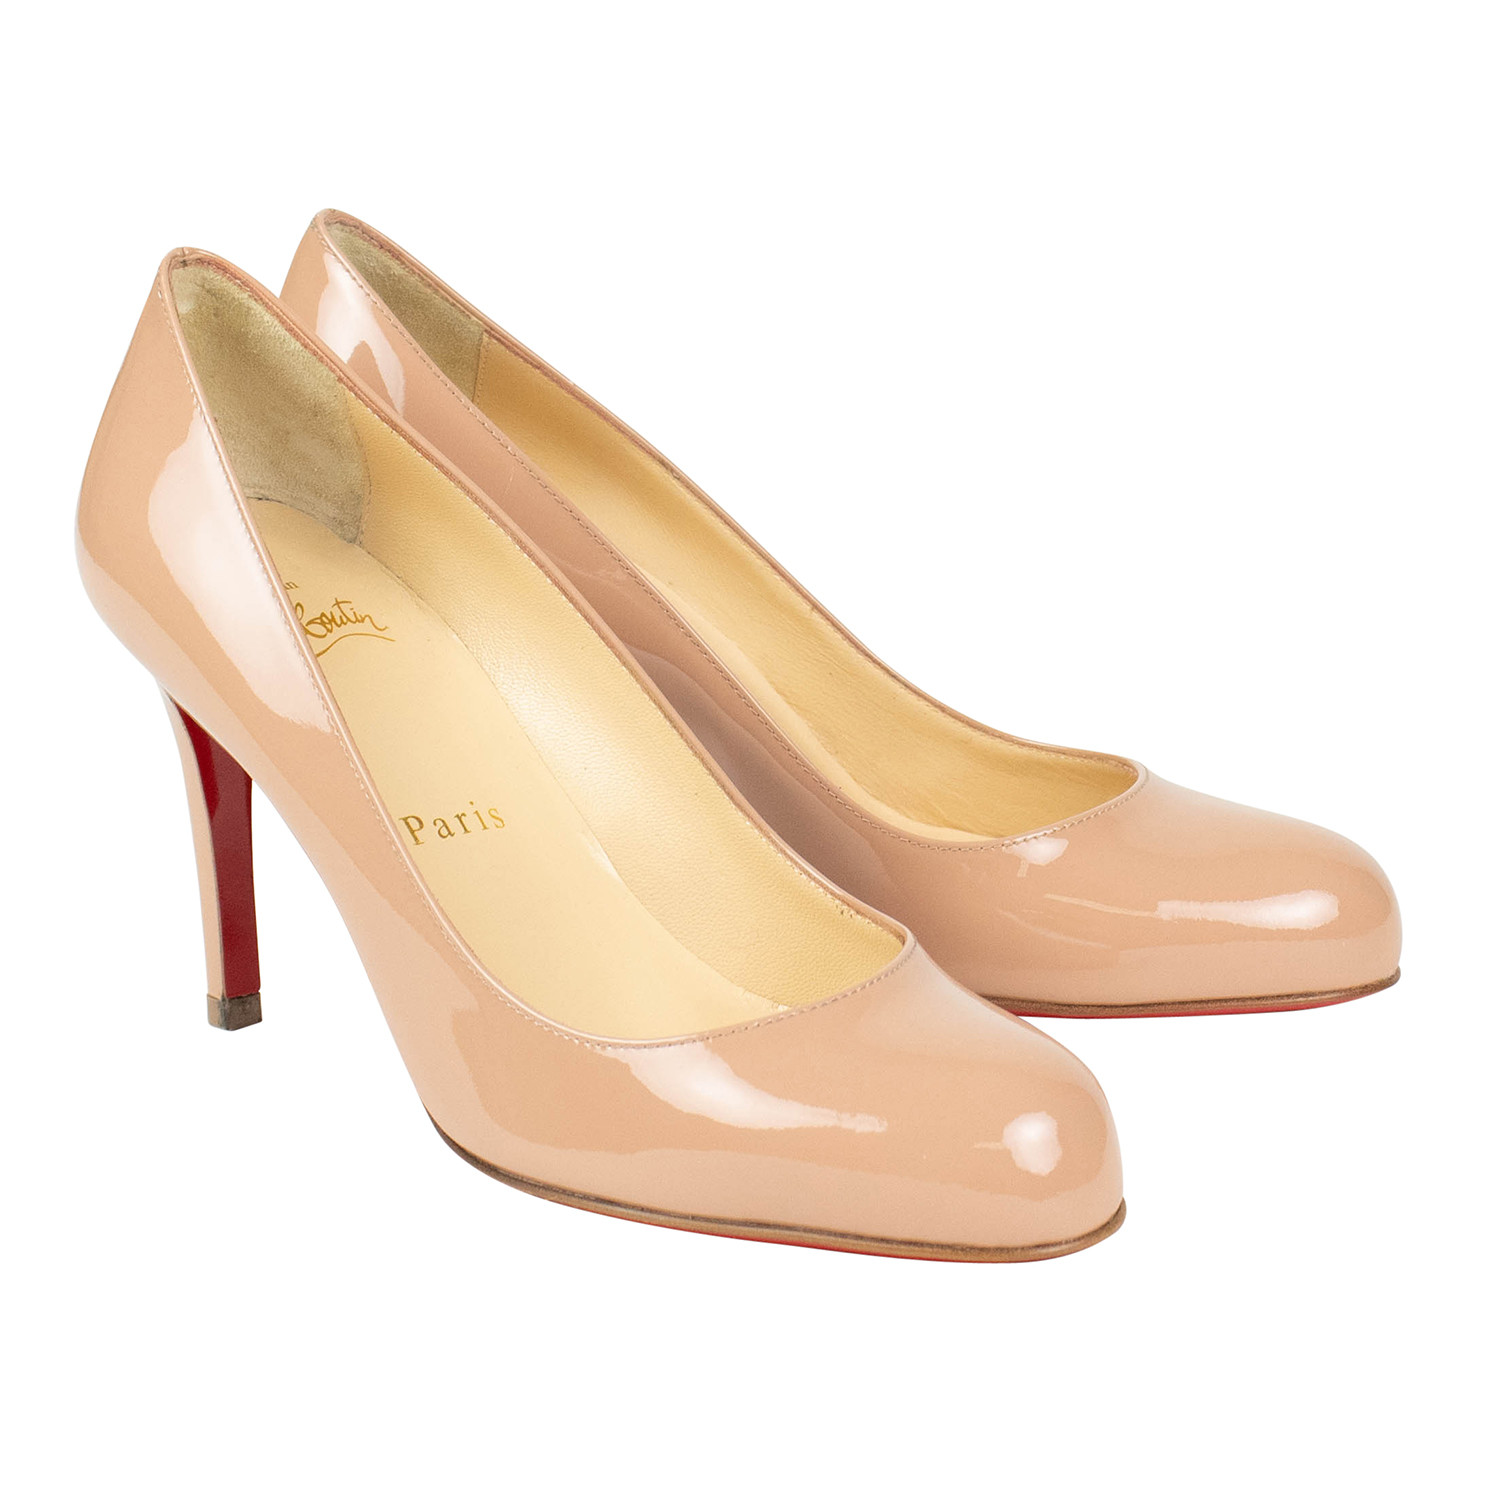 caa36636c4d Women's // Simple 85mm Patent Leather Pumps // Nude (Euro: 36 ...